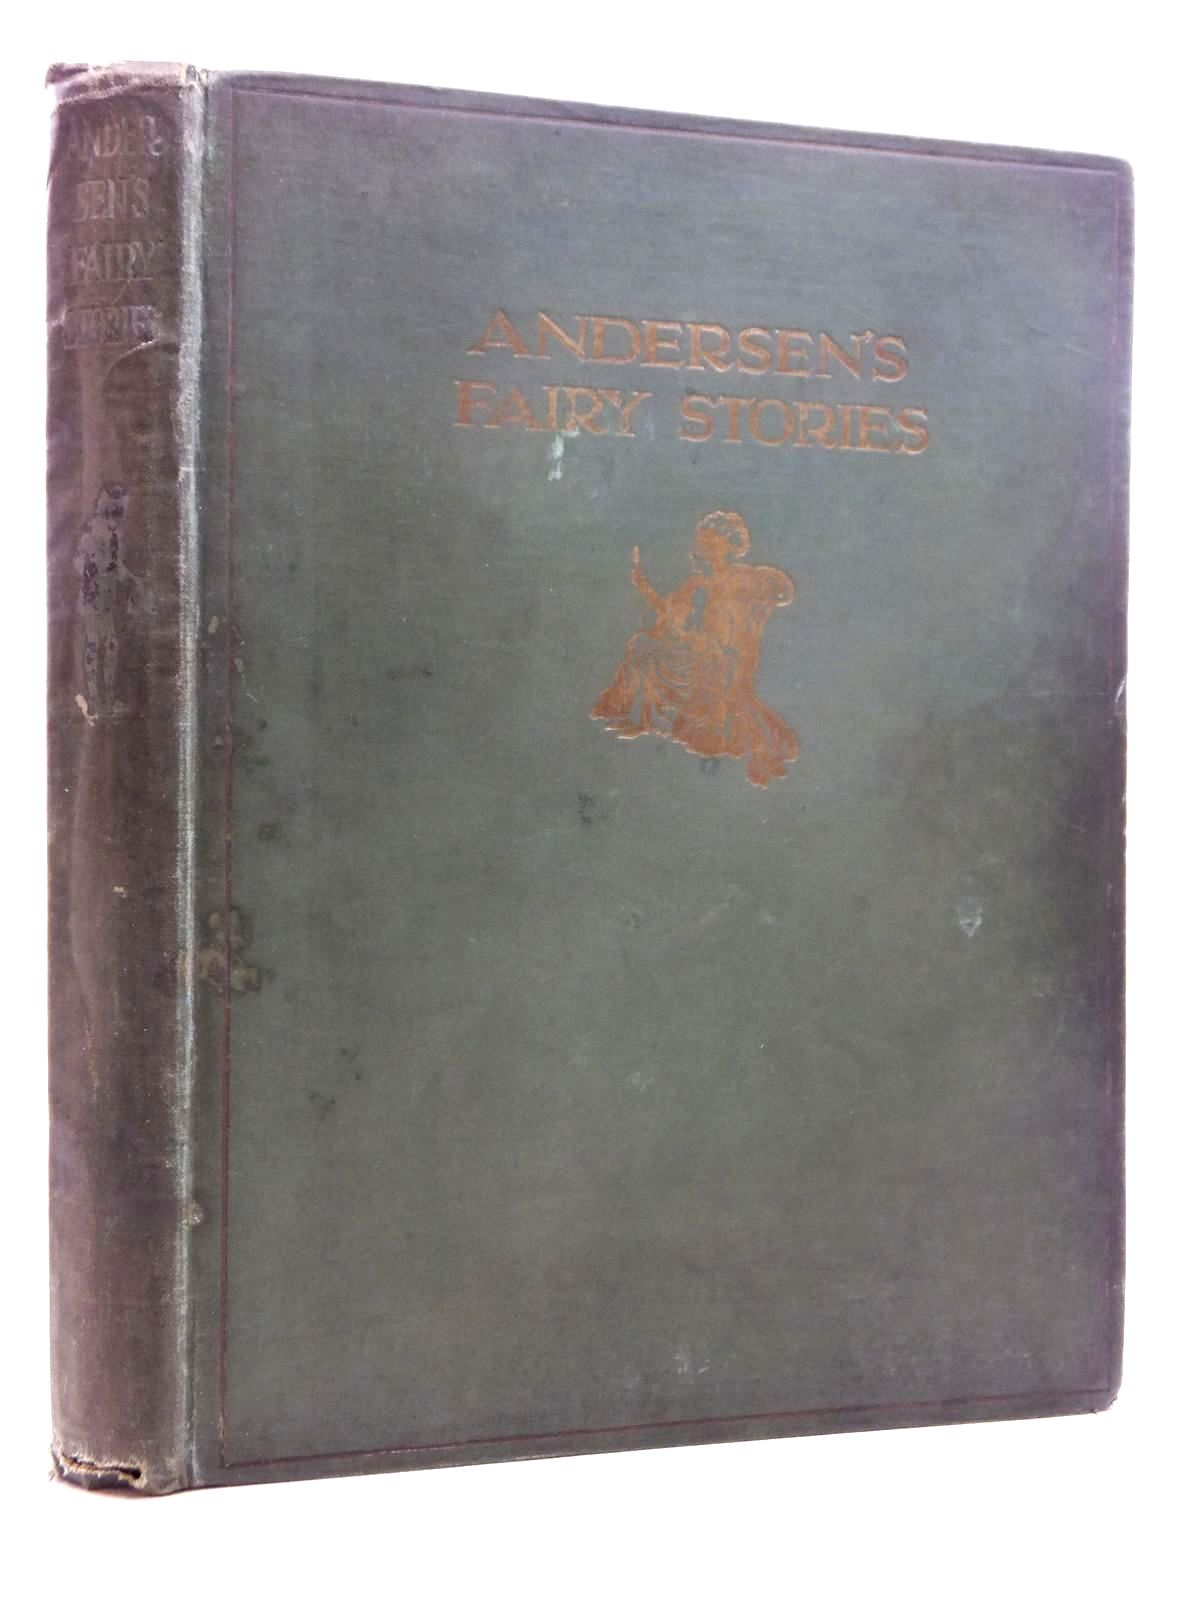 Photo of HANS ANDERSEN'S FAIRY STORIES written by Andersen, Hans Christian illustrated by Anderson, Anne published by Collins Clear-Type Press (STOCK CODE: 1609763)  for sale by Stella & Rose's Books